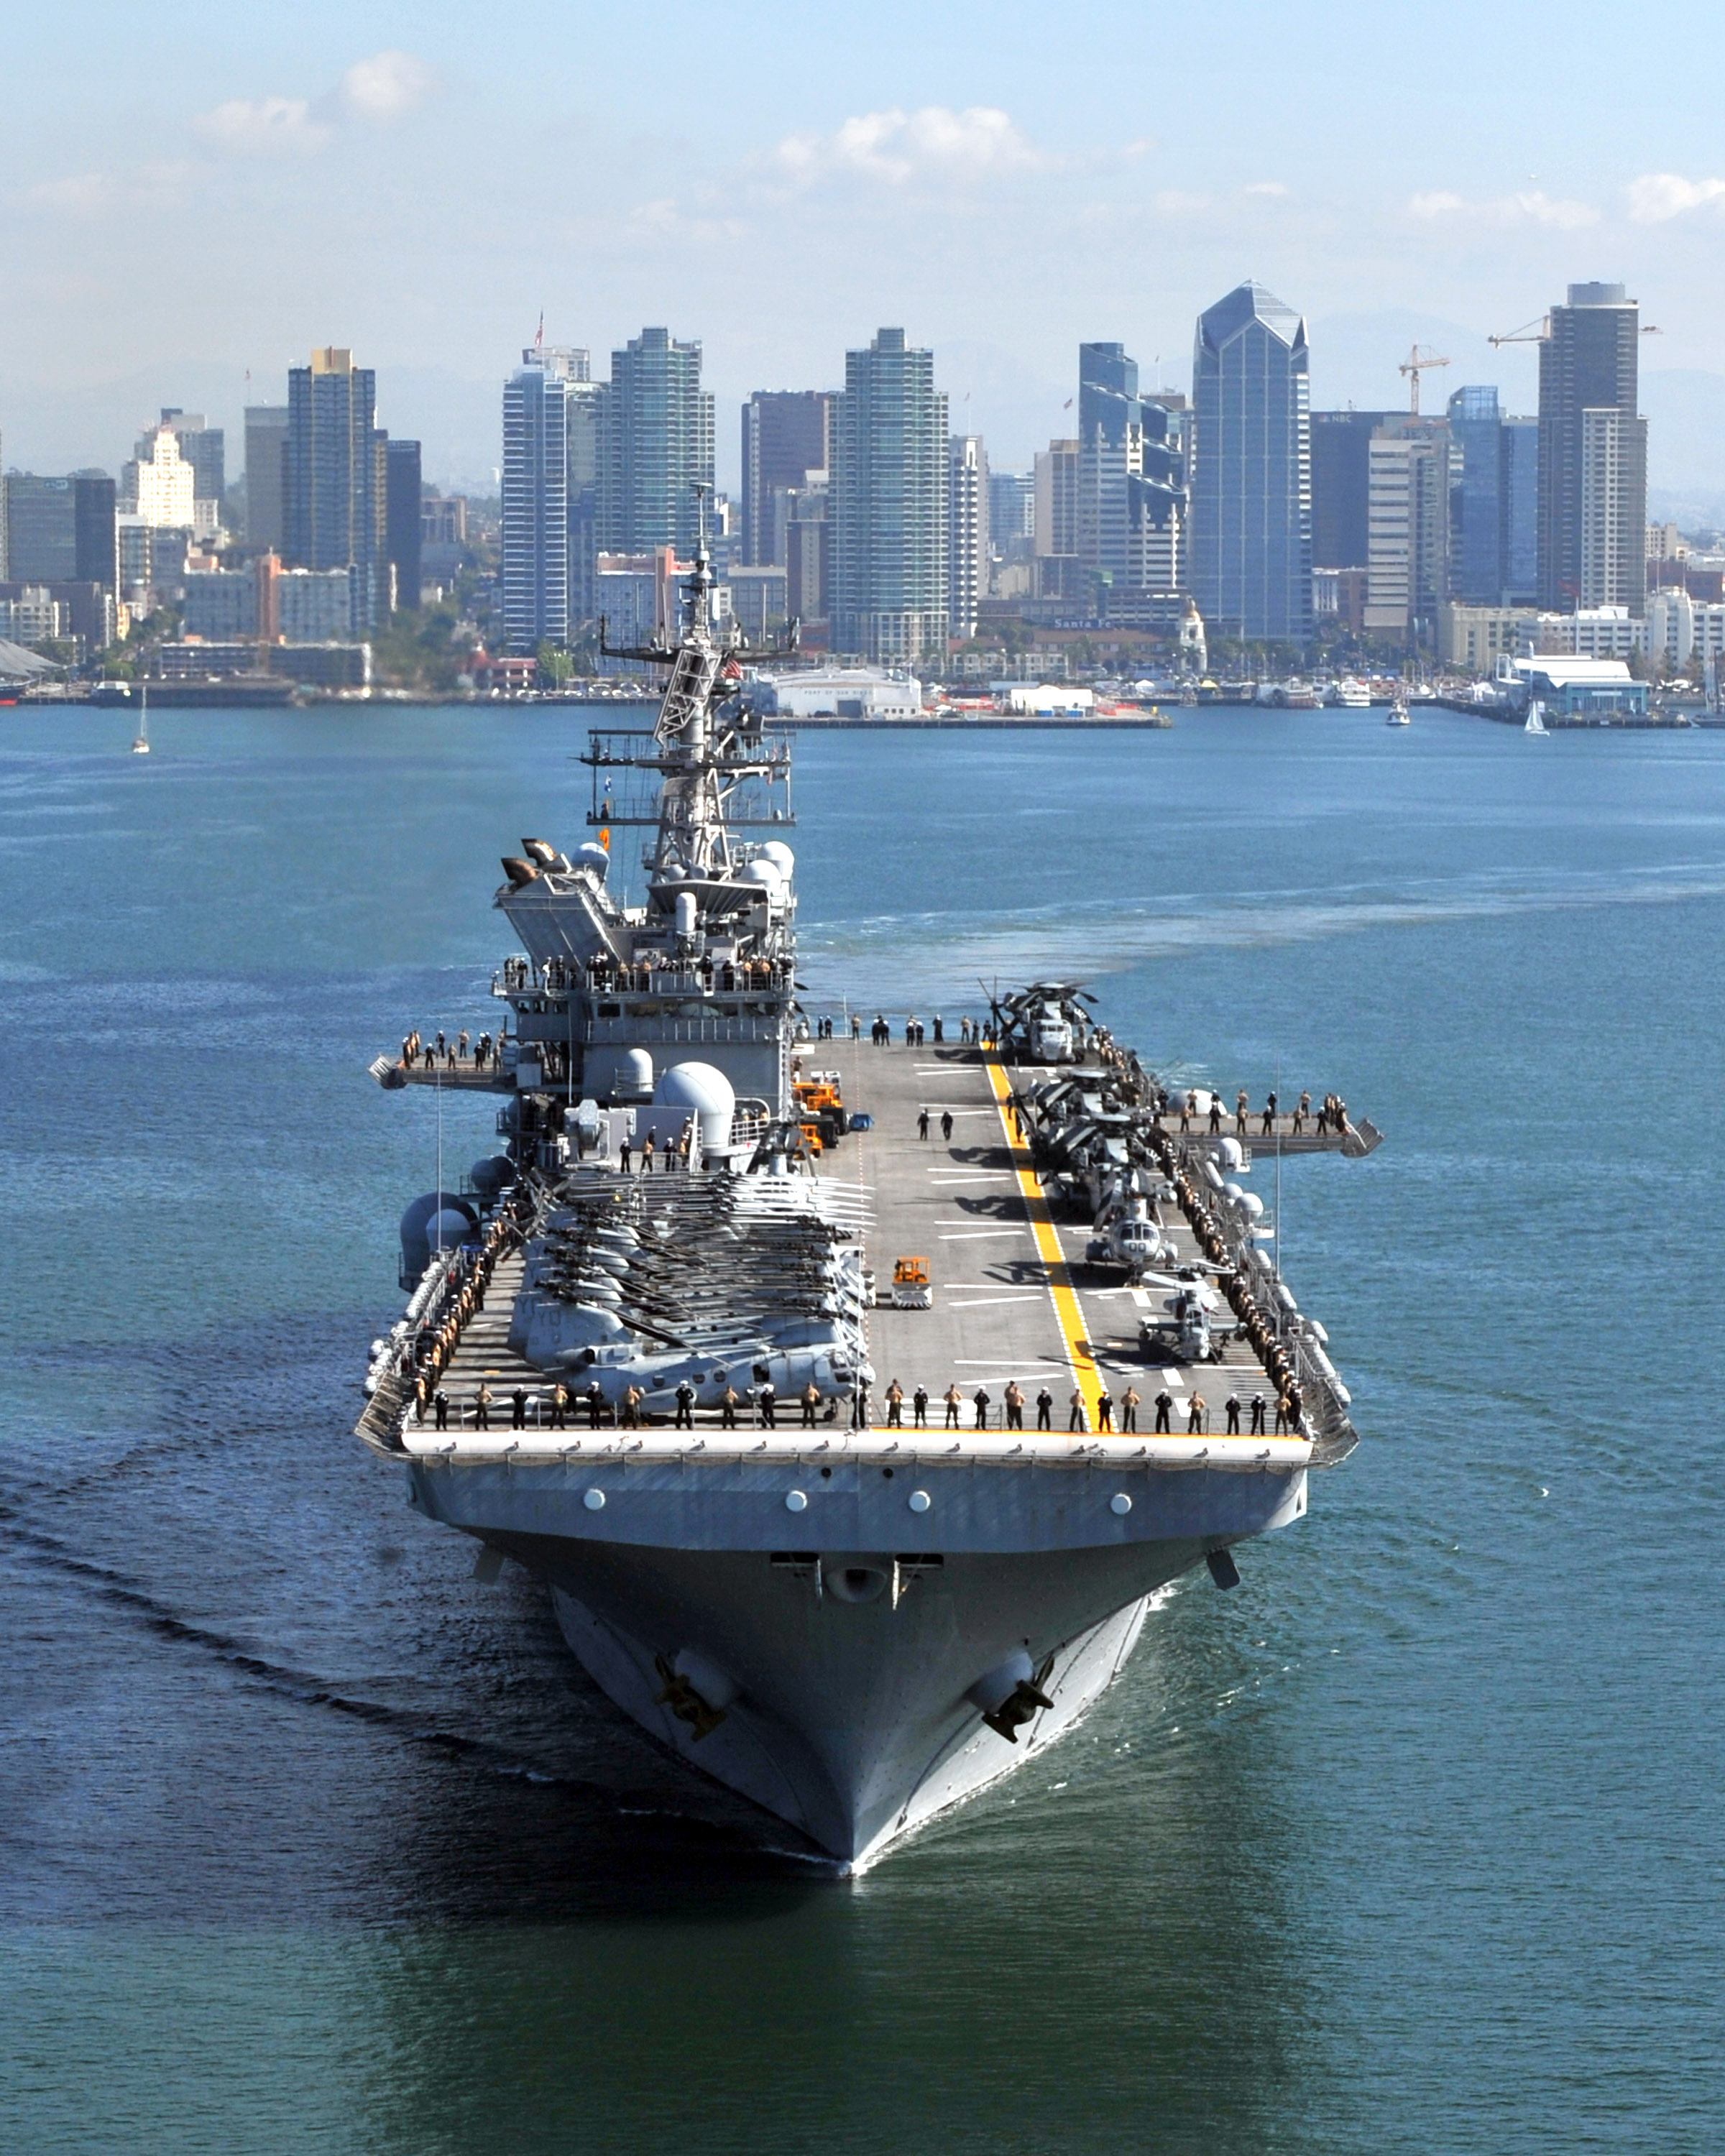 US_Navy_111114-N-KD852-188_The_amphibious_assault_ship_USS_Makin_Island_%28LHD_8%29_departs_Naval_Base_San_Diego_on_its_first_operational_deployment_to.jpg